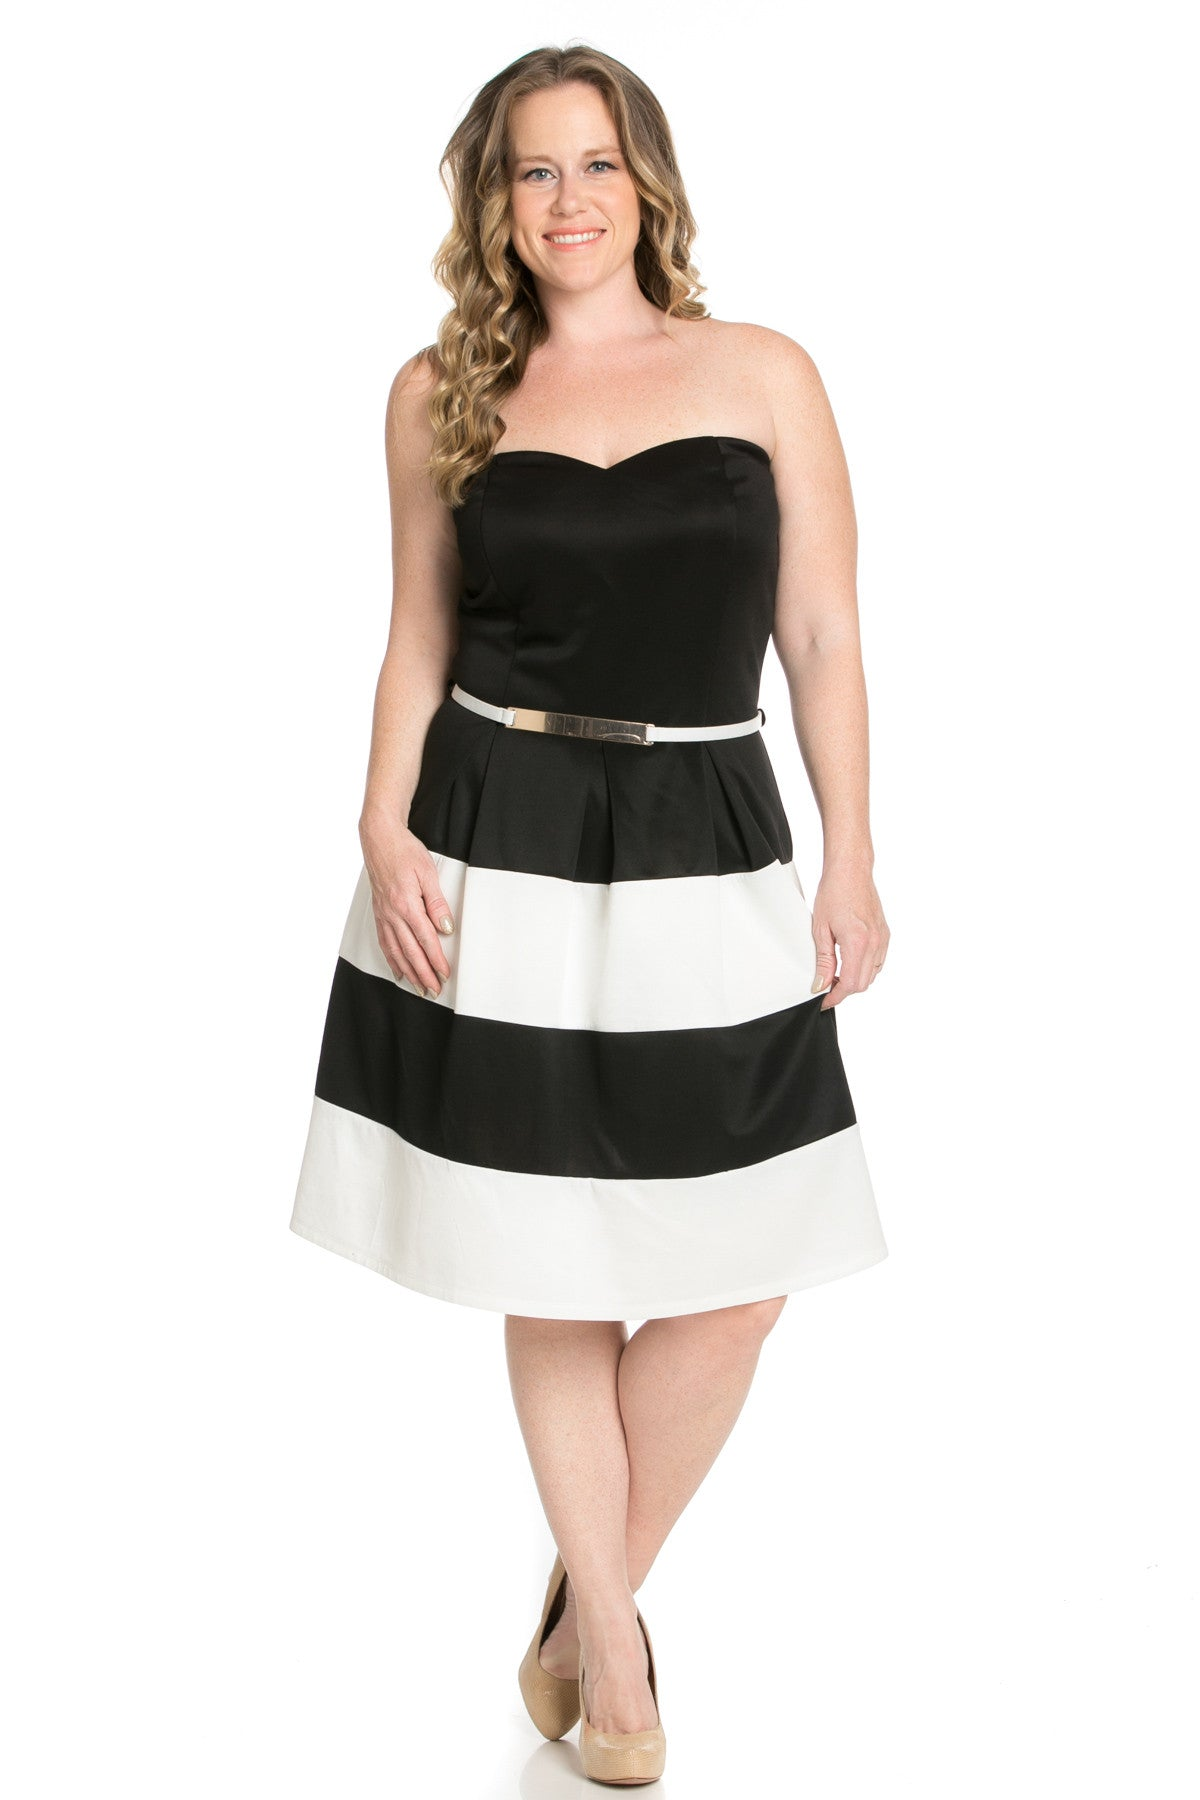 Sweetheart Color Block in Black Tube Dress with Belt - Dresses - My Yuccie - 6